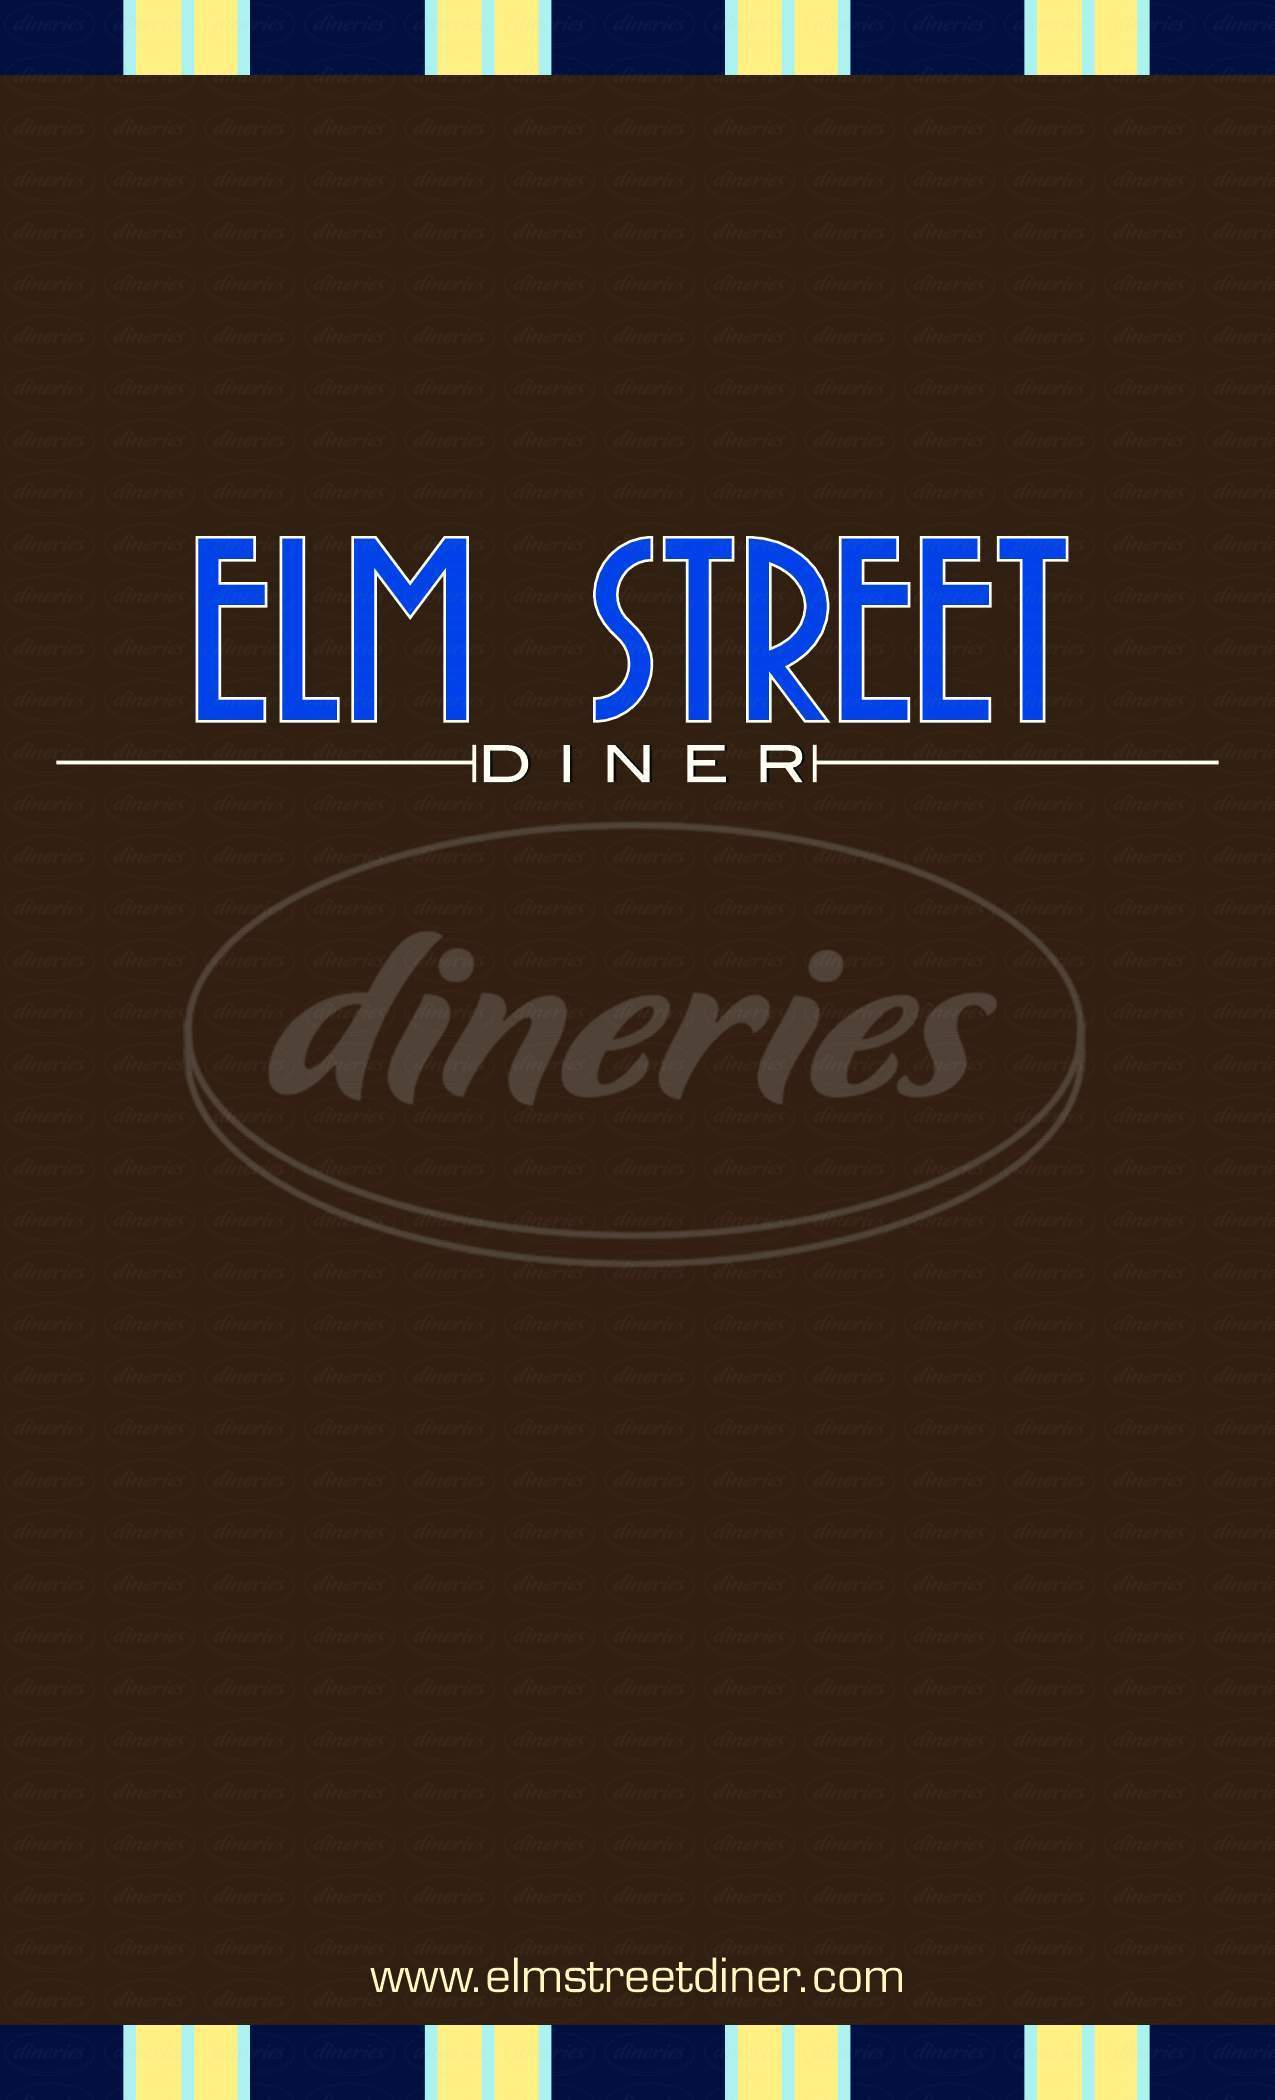 menu for Elm Street Diner